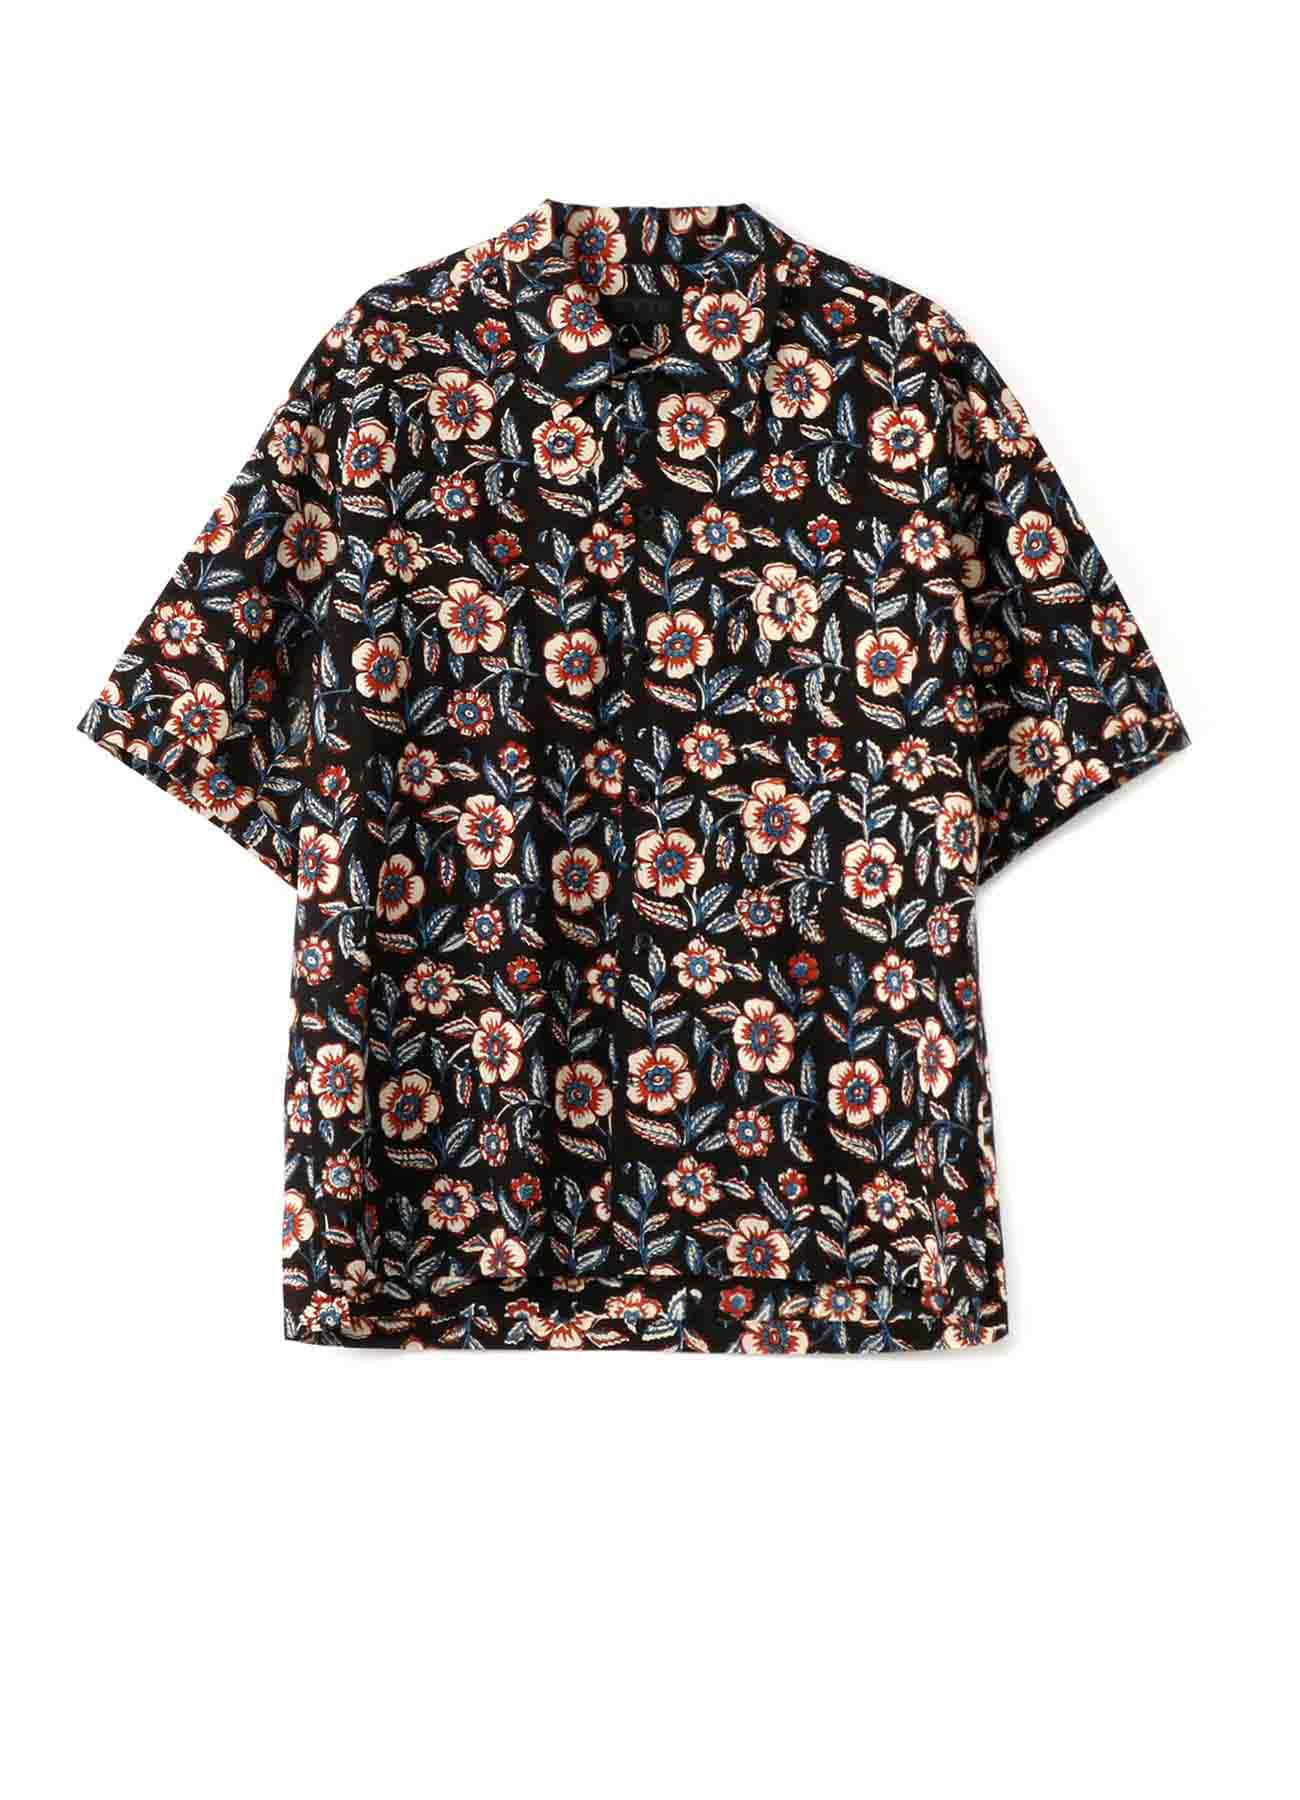 Indian Botanical Red Ethnic Big Short Sleeve Shirt